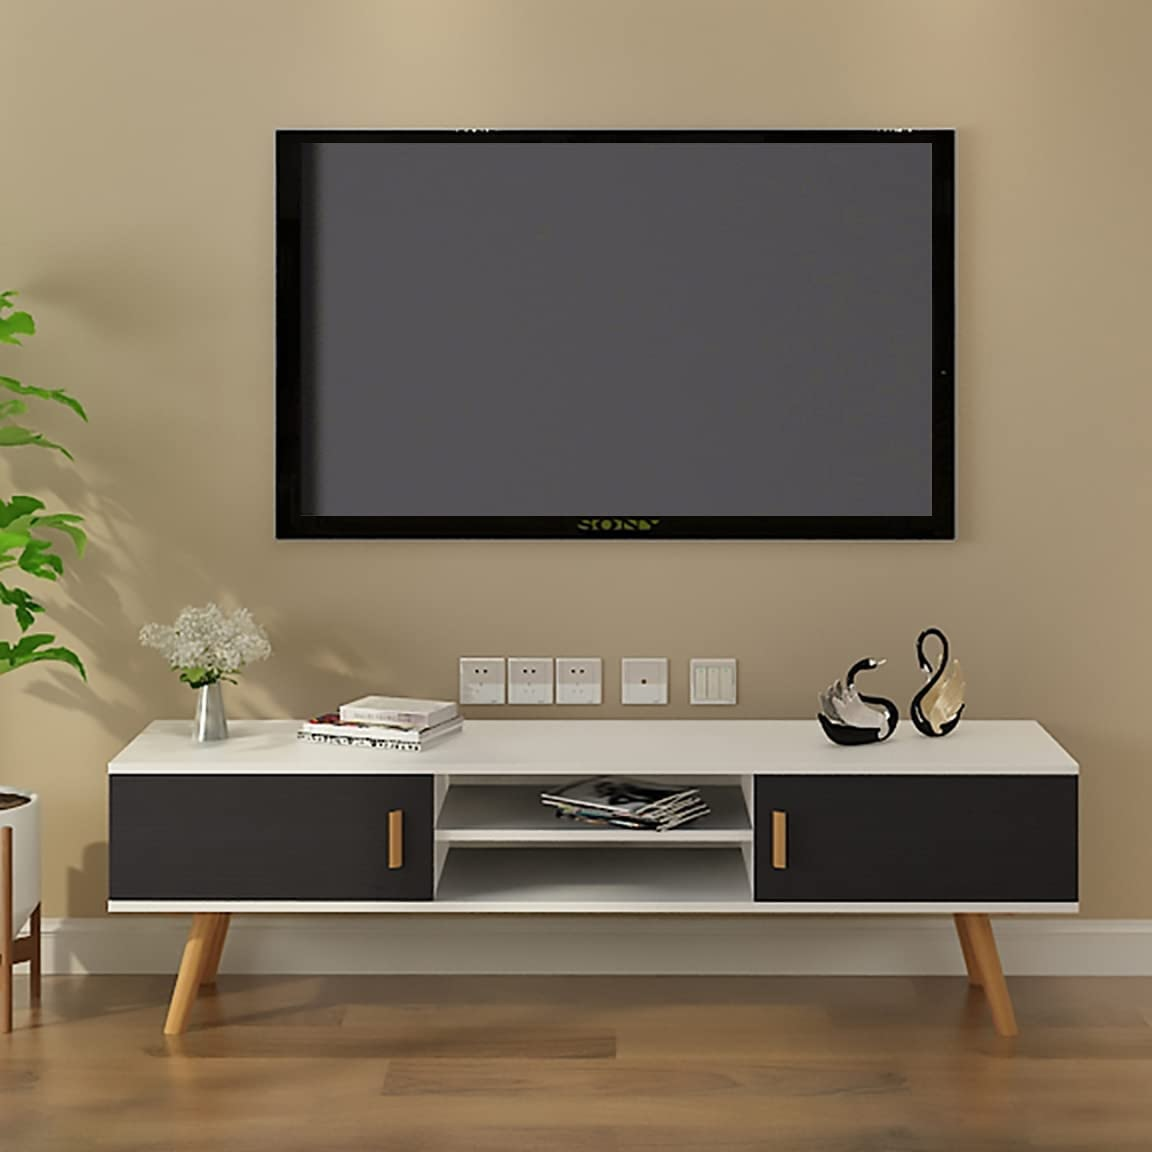 Minimalist Living room wooden cabinet with sholves design ideas